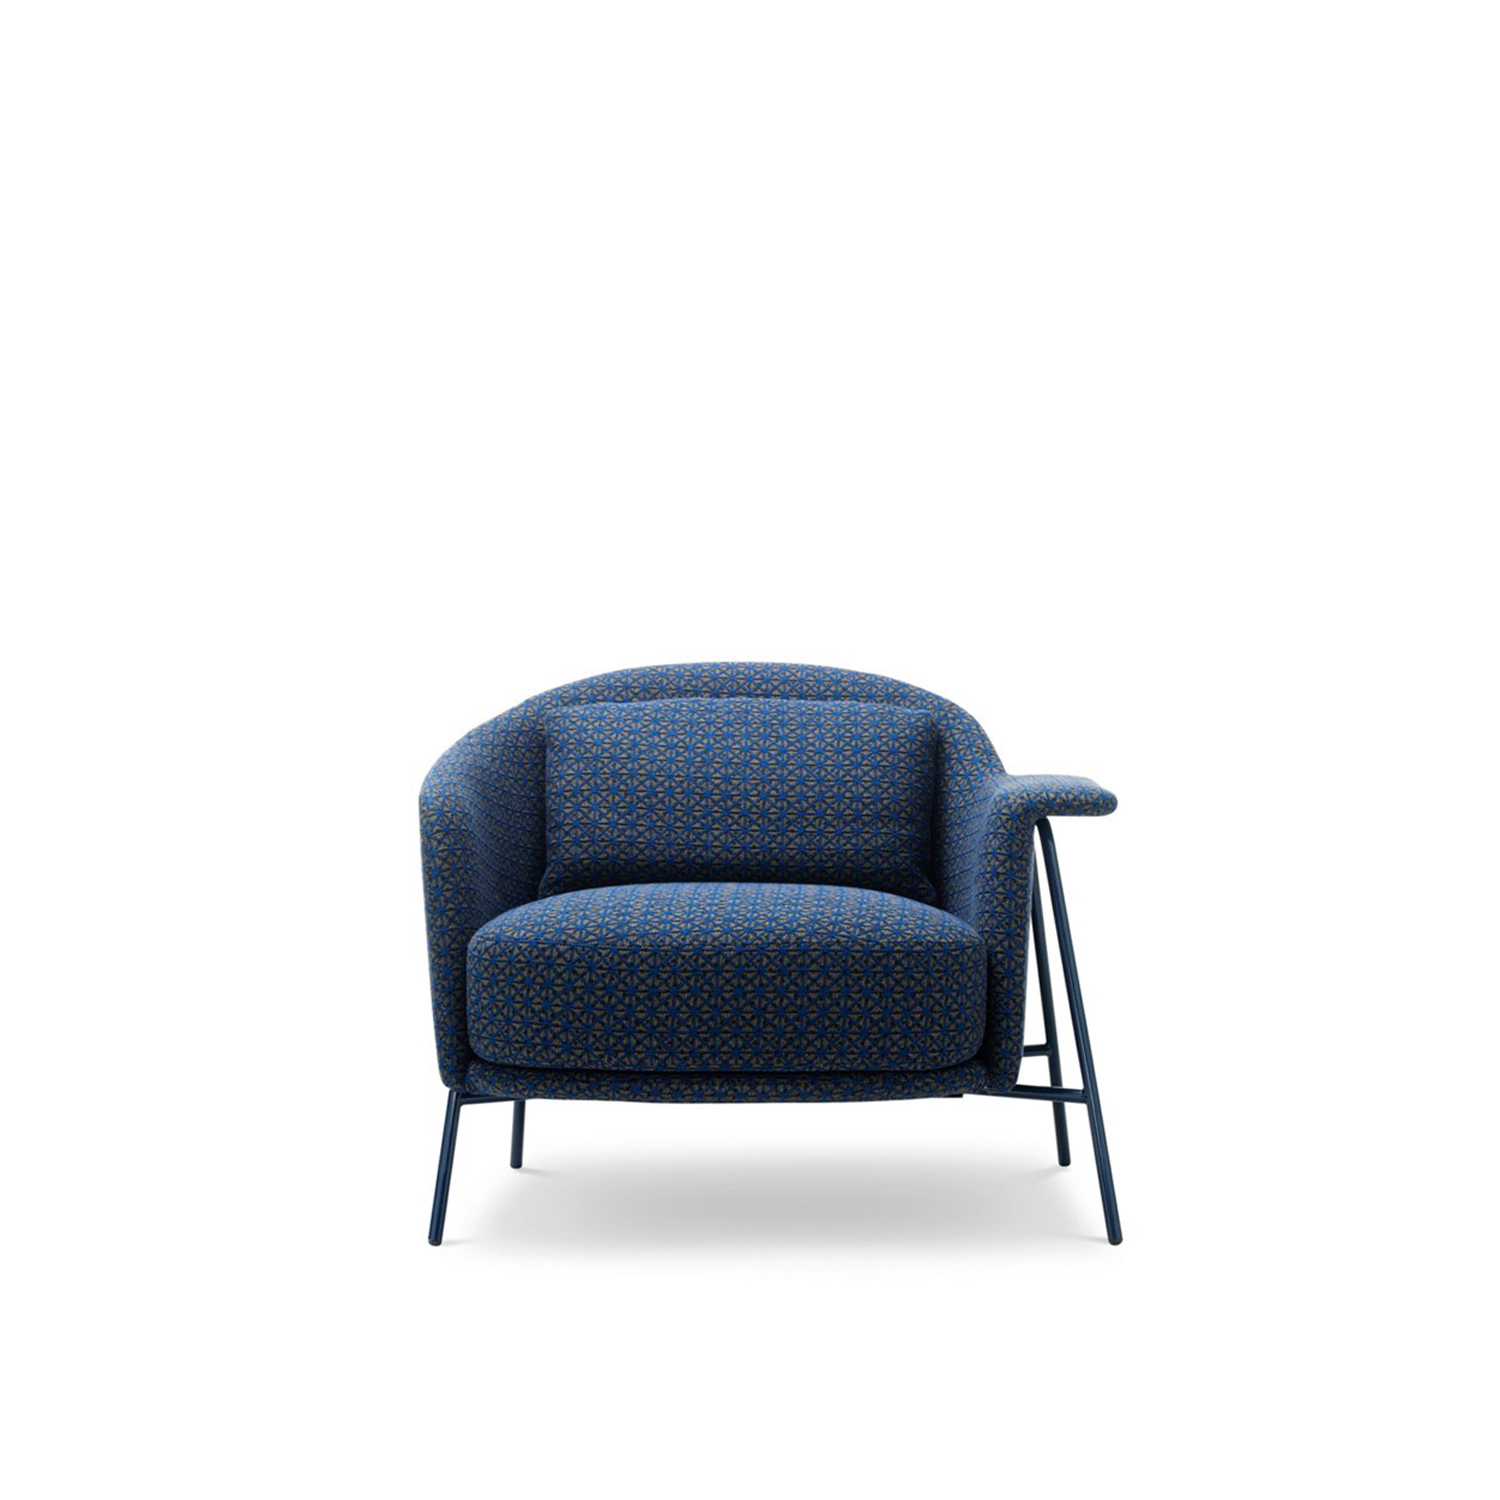 Kepi Lounge Armchair with Metal Feet - The Kepi armchair's sober design and vaguely Nordic look are softened by rounded lines that add character and improve comfort. Its clean design and nonchalant elegance make it perfect for the home and contract environments. The structure in bleached ash wood becomes its characteristic trait. The base is also available in varnished tubular stainless steel. The collection also includes a two-seat sofa and a pouf. Fully removable covers.  Additional removable cover is available, please enquire for prices.  Materials:  Structure in plywood with variable-density polyurethane foam (75IP and 25IM) covered with velfodera coupled with resin 150 gr/sqm. The armchair has got feet in ash or iron painted rod 18 mm. The seat cushion is in variable-density polyurethane foam (40IM and 25IM) covered with fine velvet coupled with dacron 280 gr/sqm. The lumber cushion is mae in 100% cotton fabric and padded with washed and sterilized goose down. | Matter of Stuff